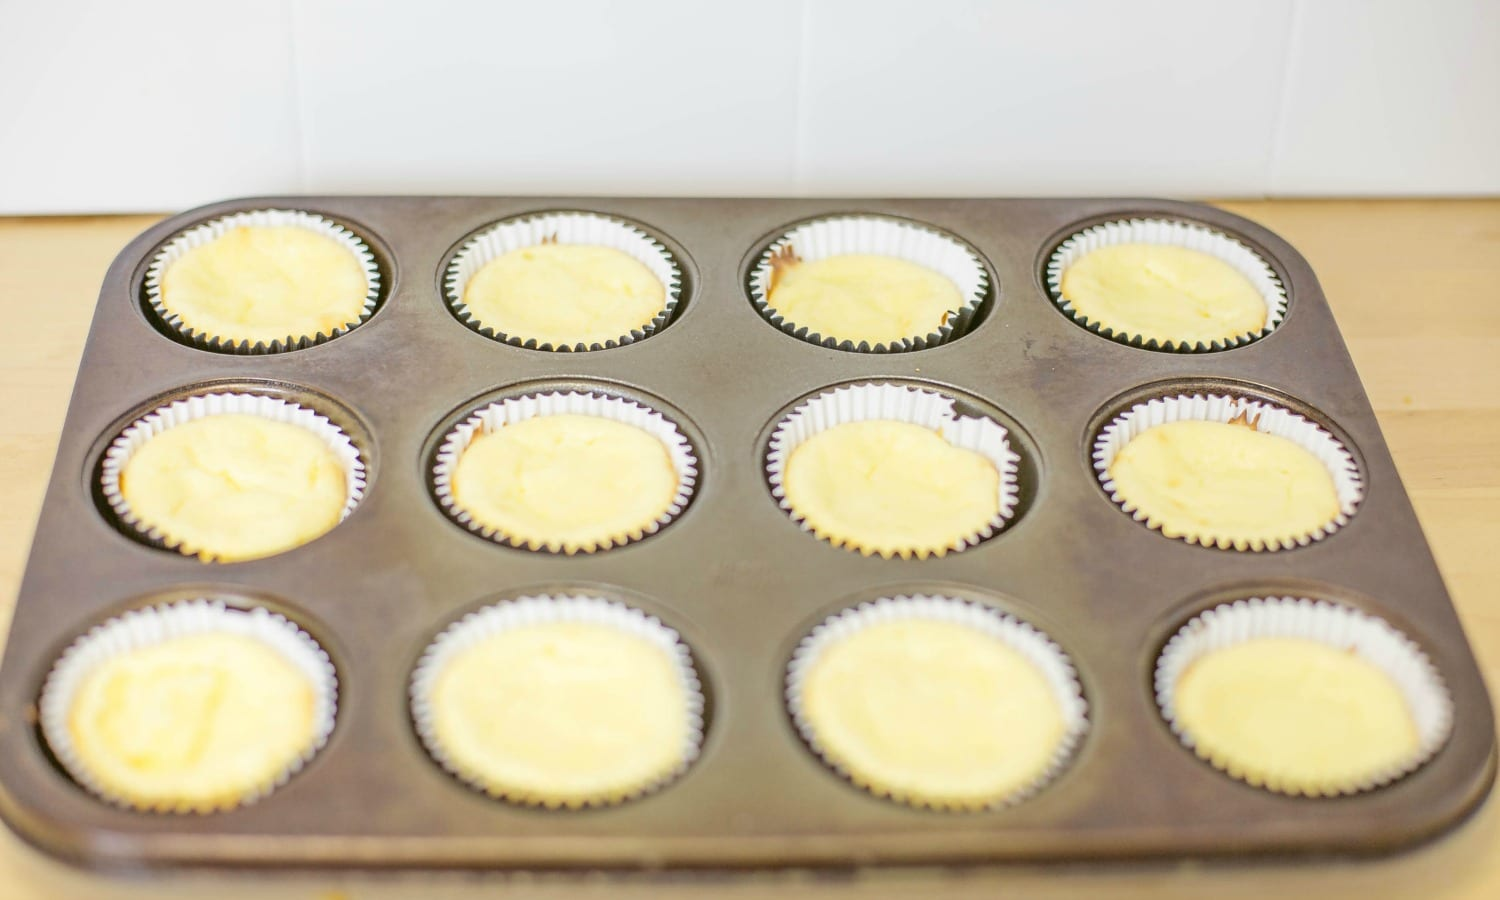 Almost done! Bake for 20 minutes and then cool these amazing-smelling, easy Mini Cheesecakes.